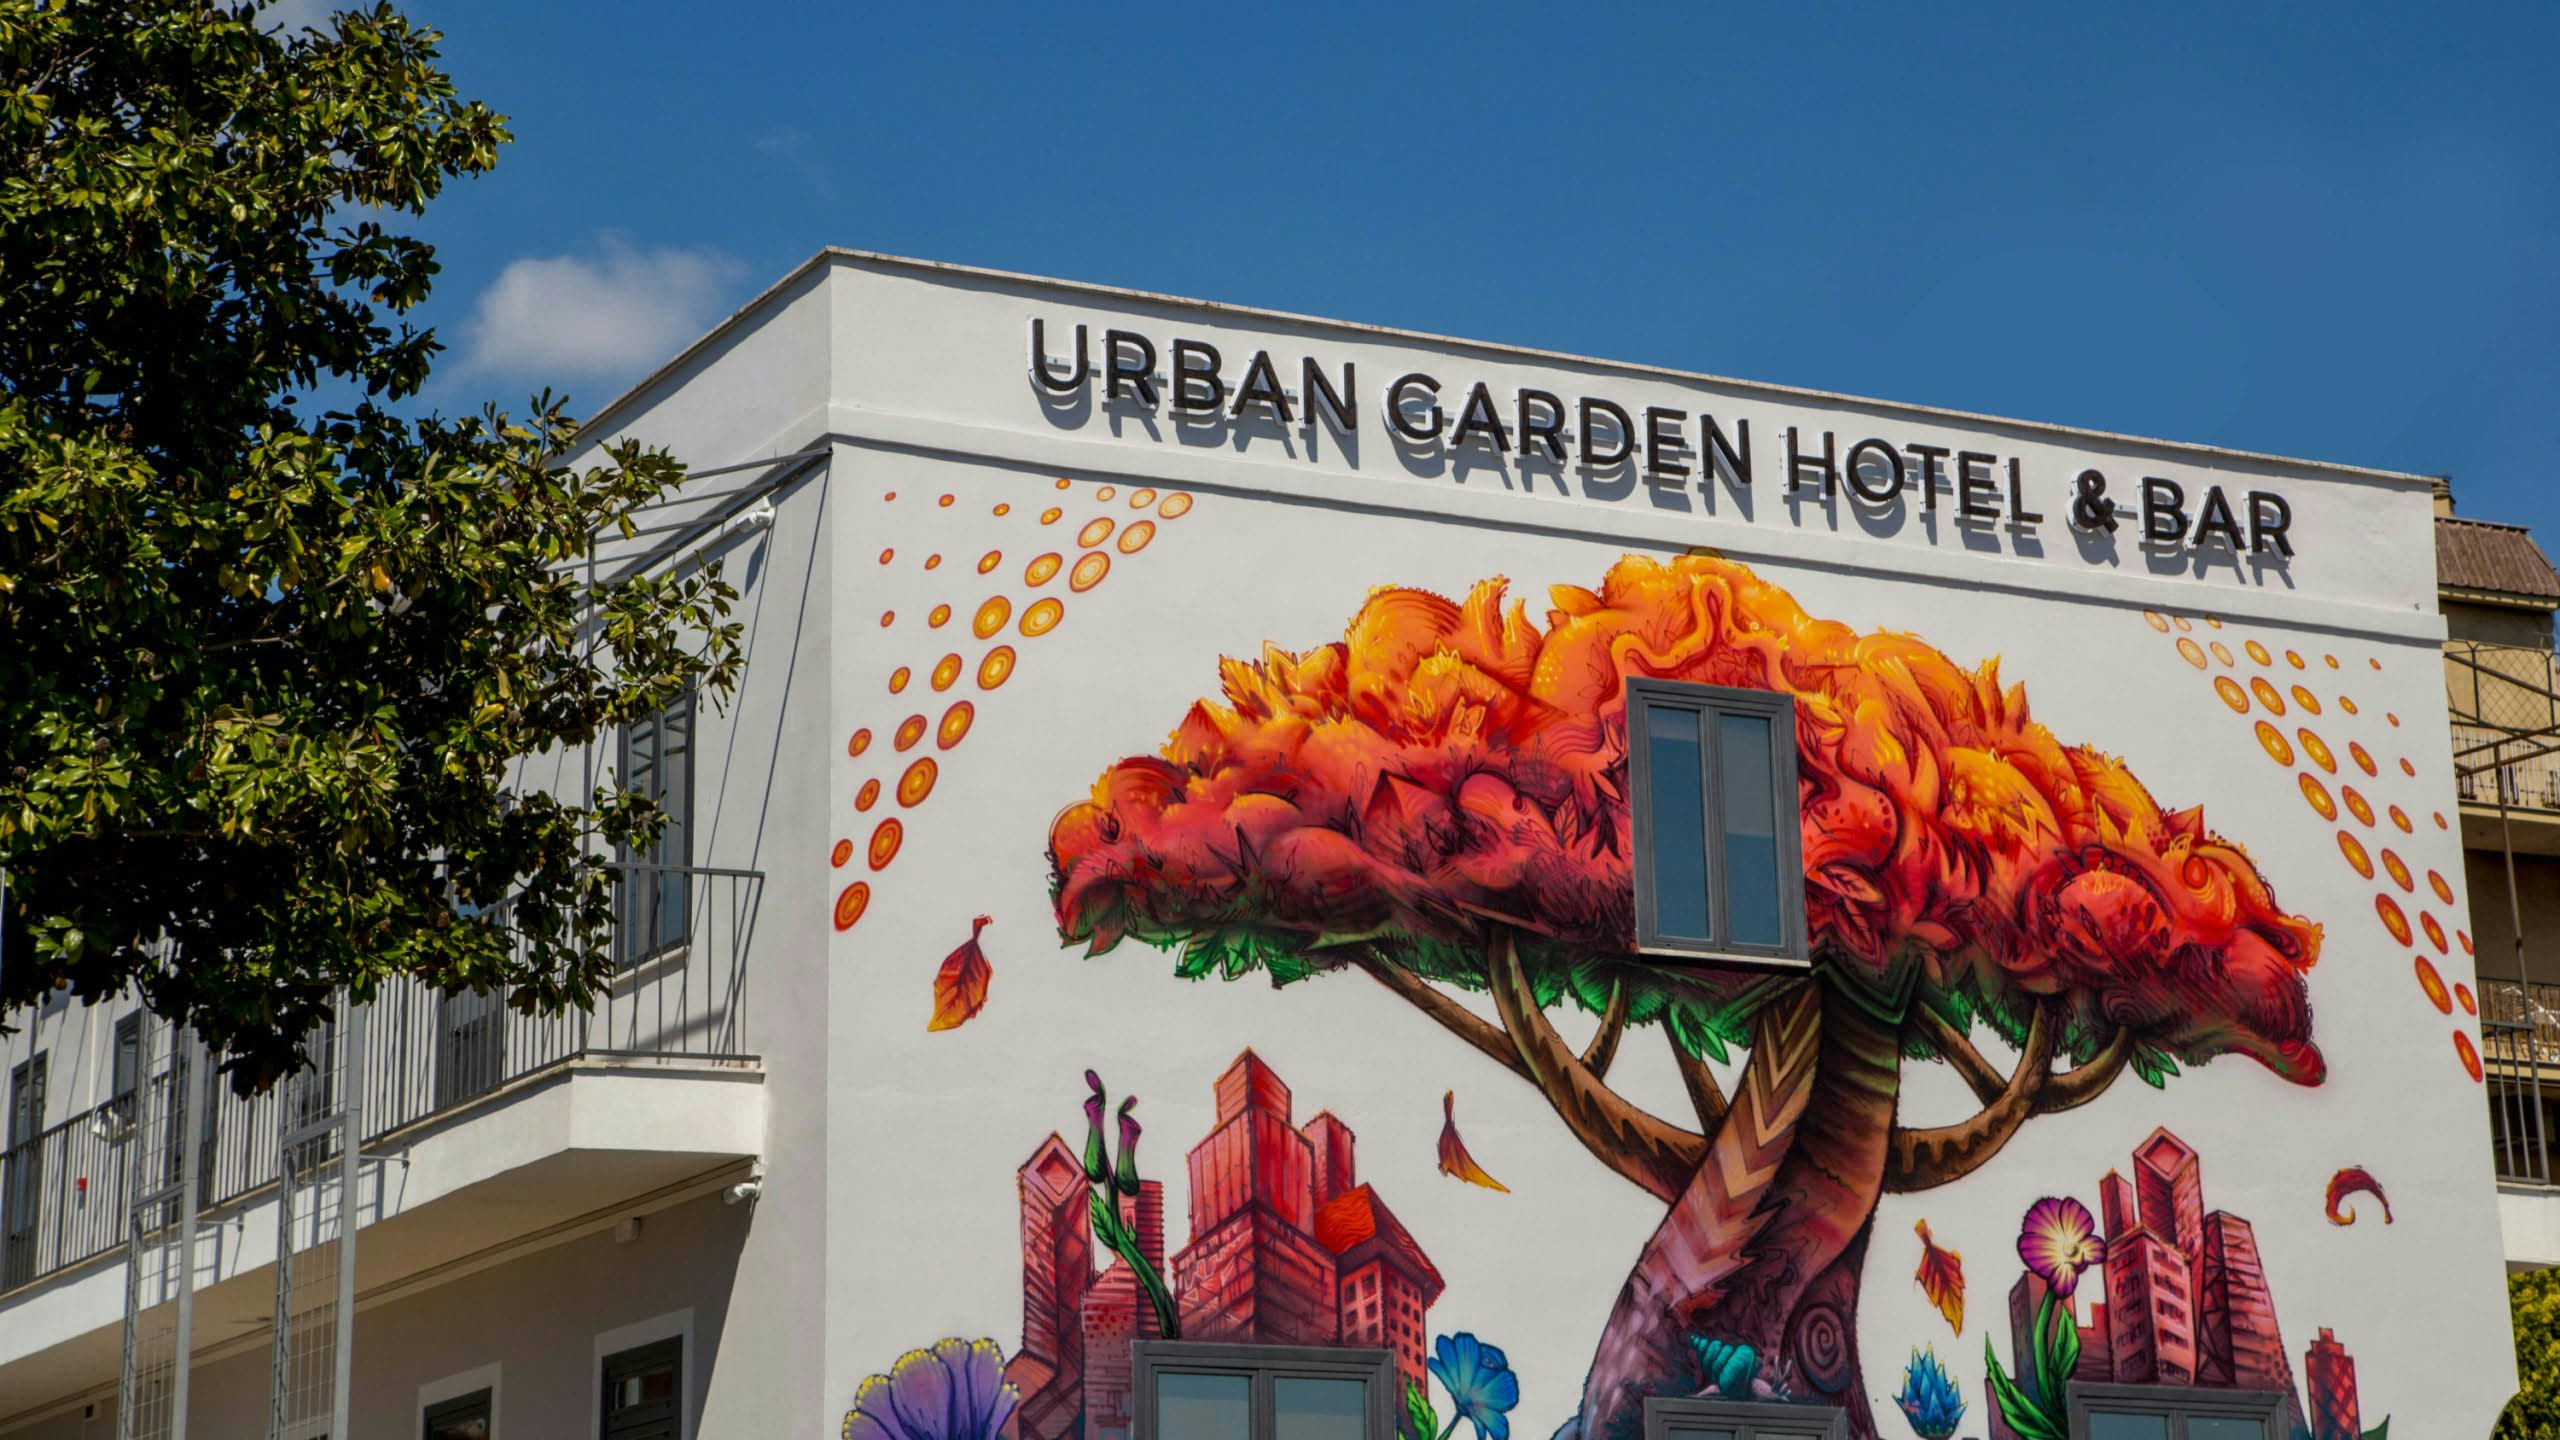 book now your stay at the best rate available - Urban Garden